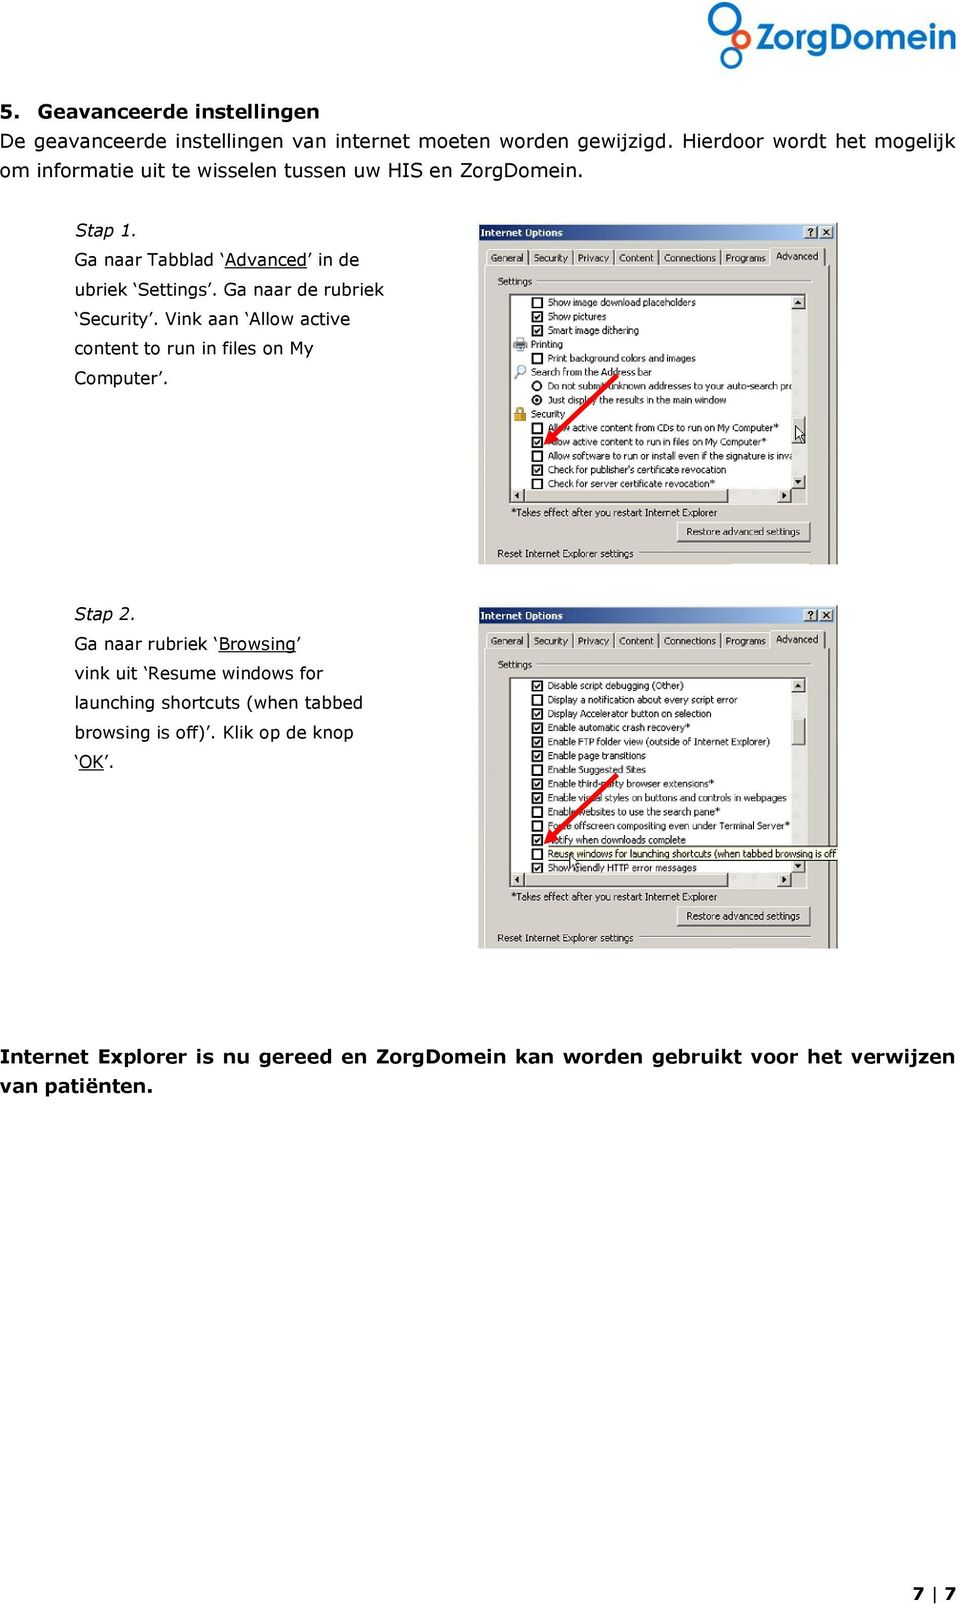 Ga naar de rubriek Security. Vink aan Allow active content to run in files on My Computer.